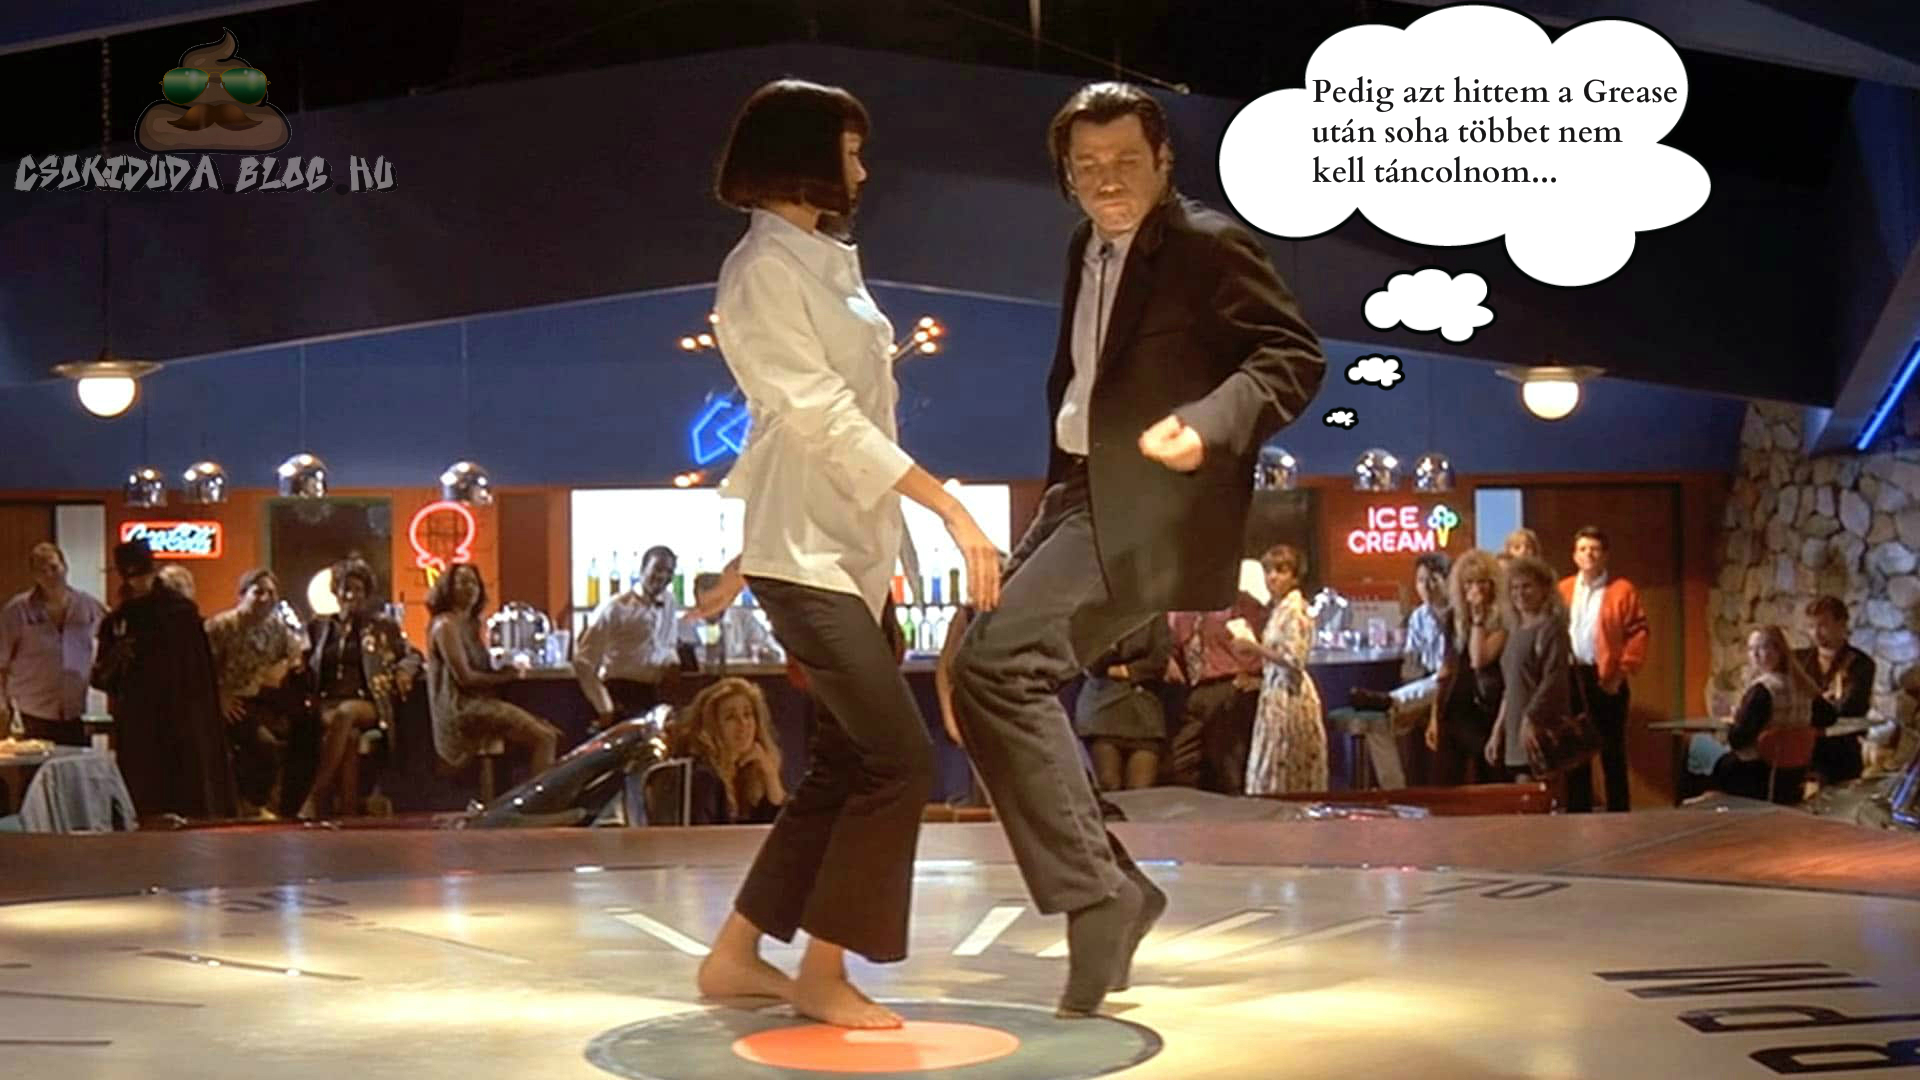 pulpfiction_grease_vizjel.jpg